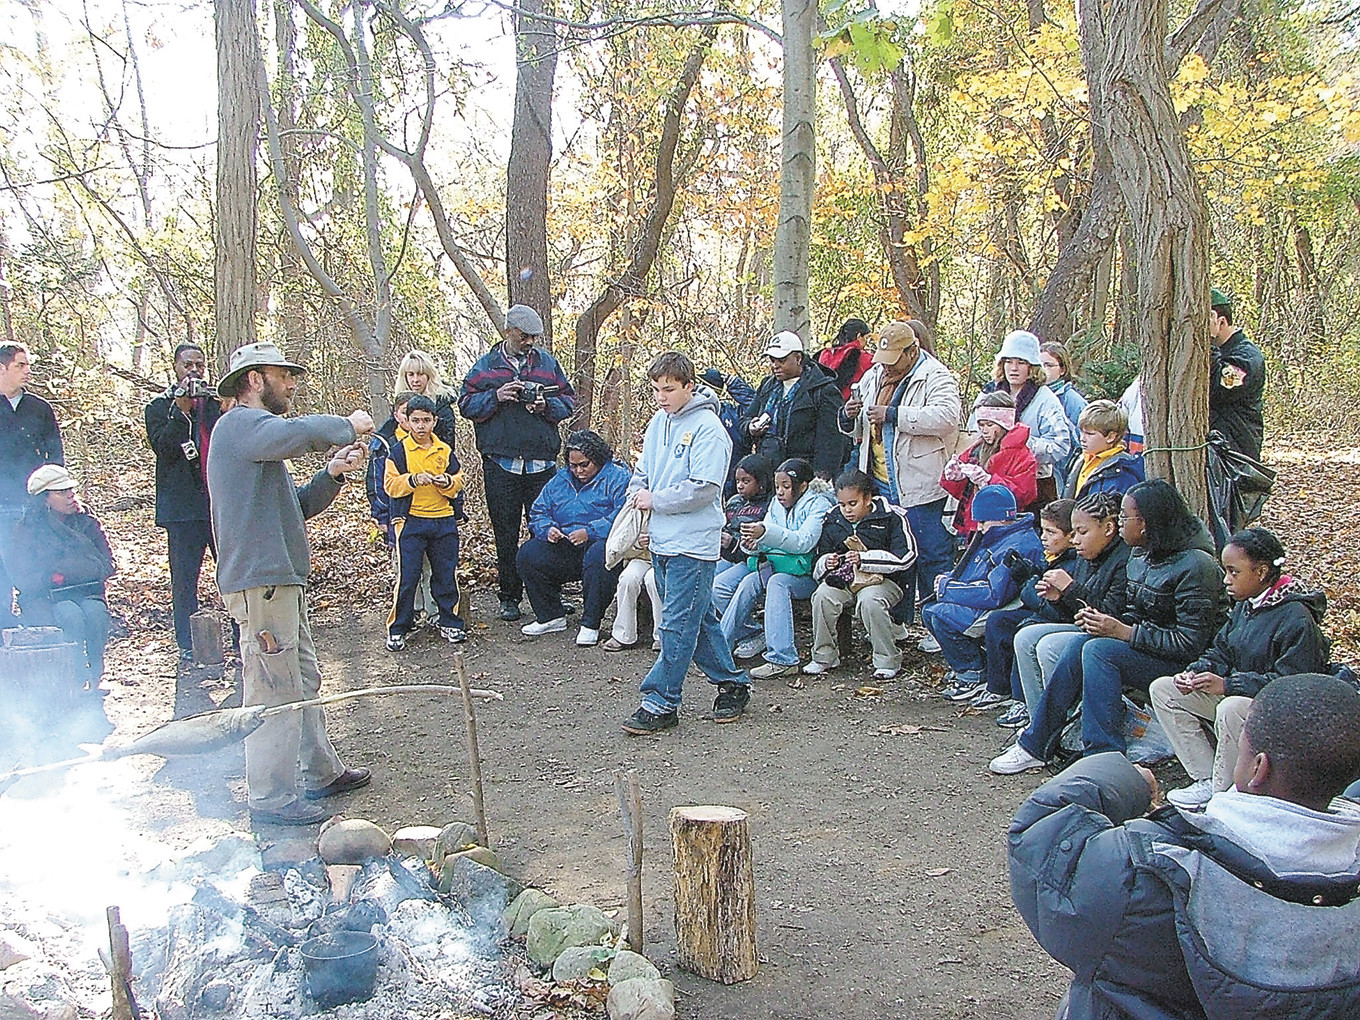 Gather 'round the fire and share in a Native American celebration of the  harvest season.